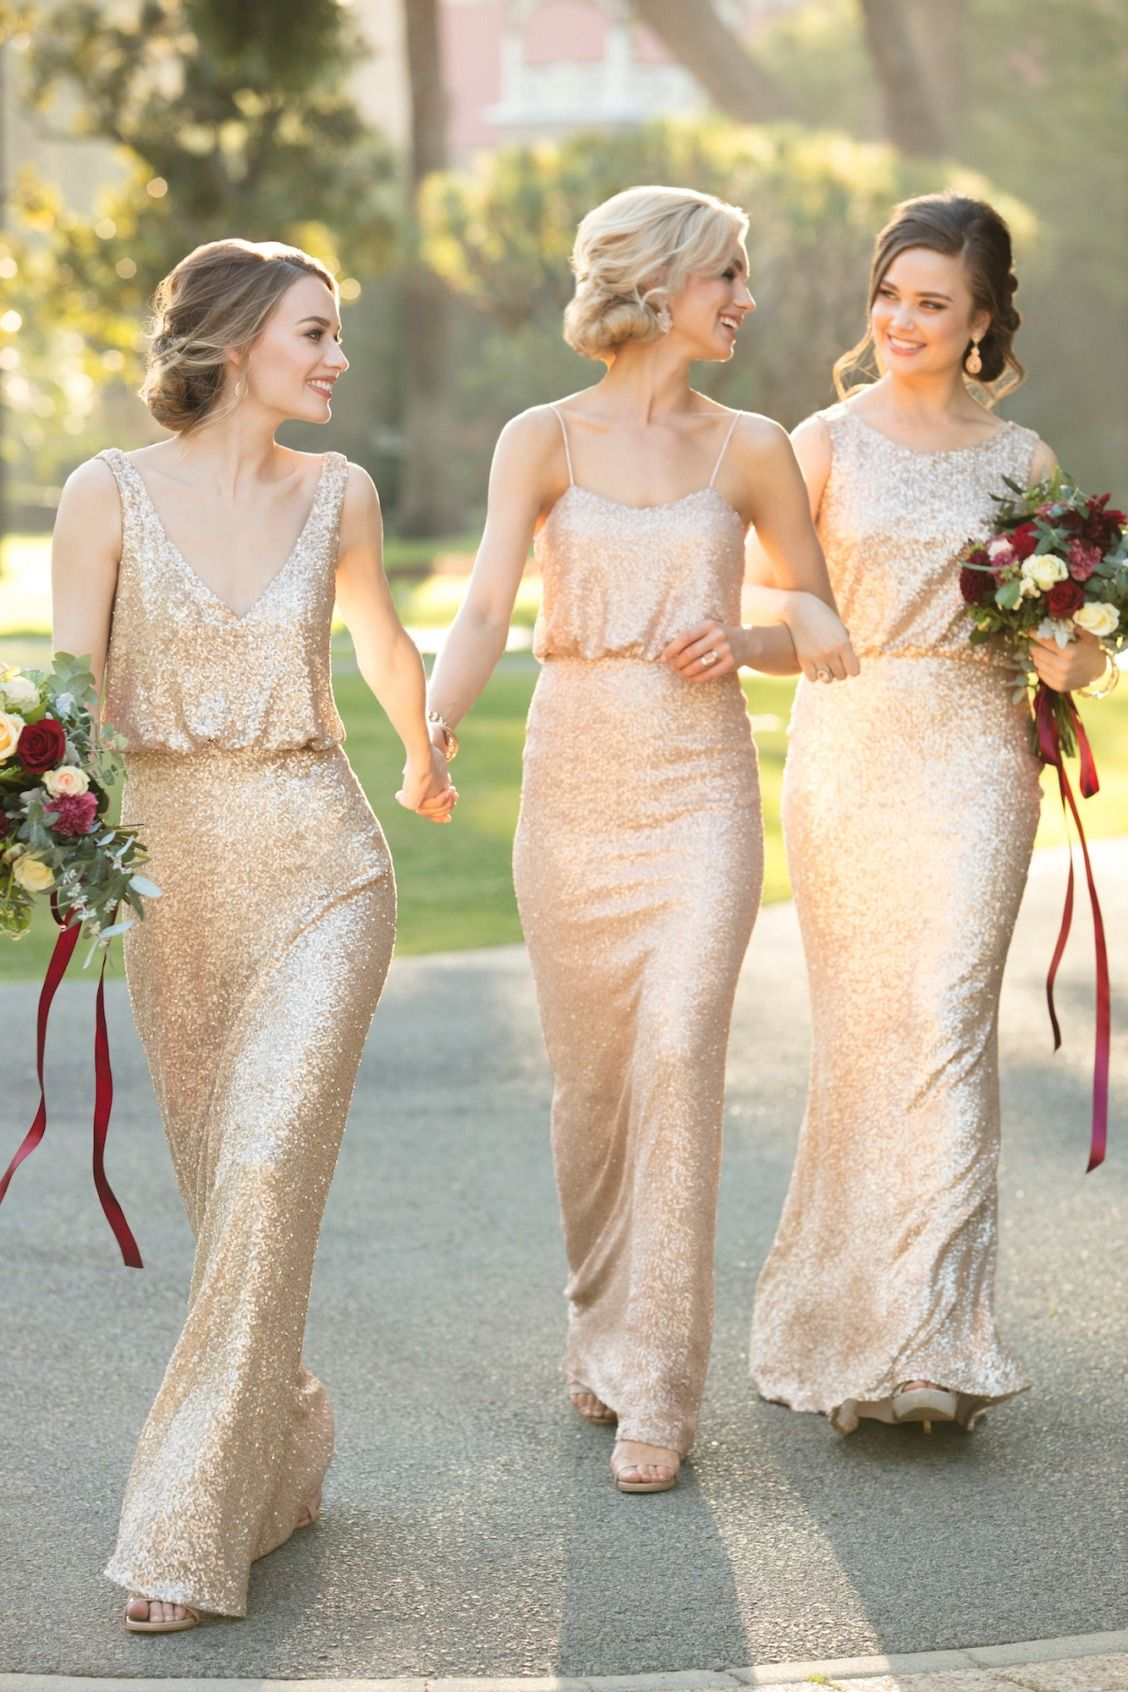 Trends We Love Relaxed Glam Bridesmaid Dresses   Pretty Happy ...